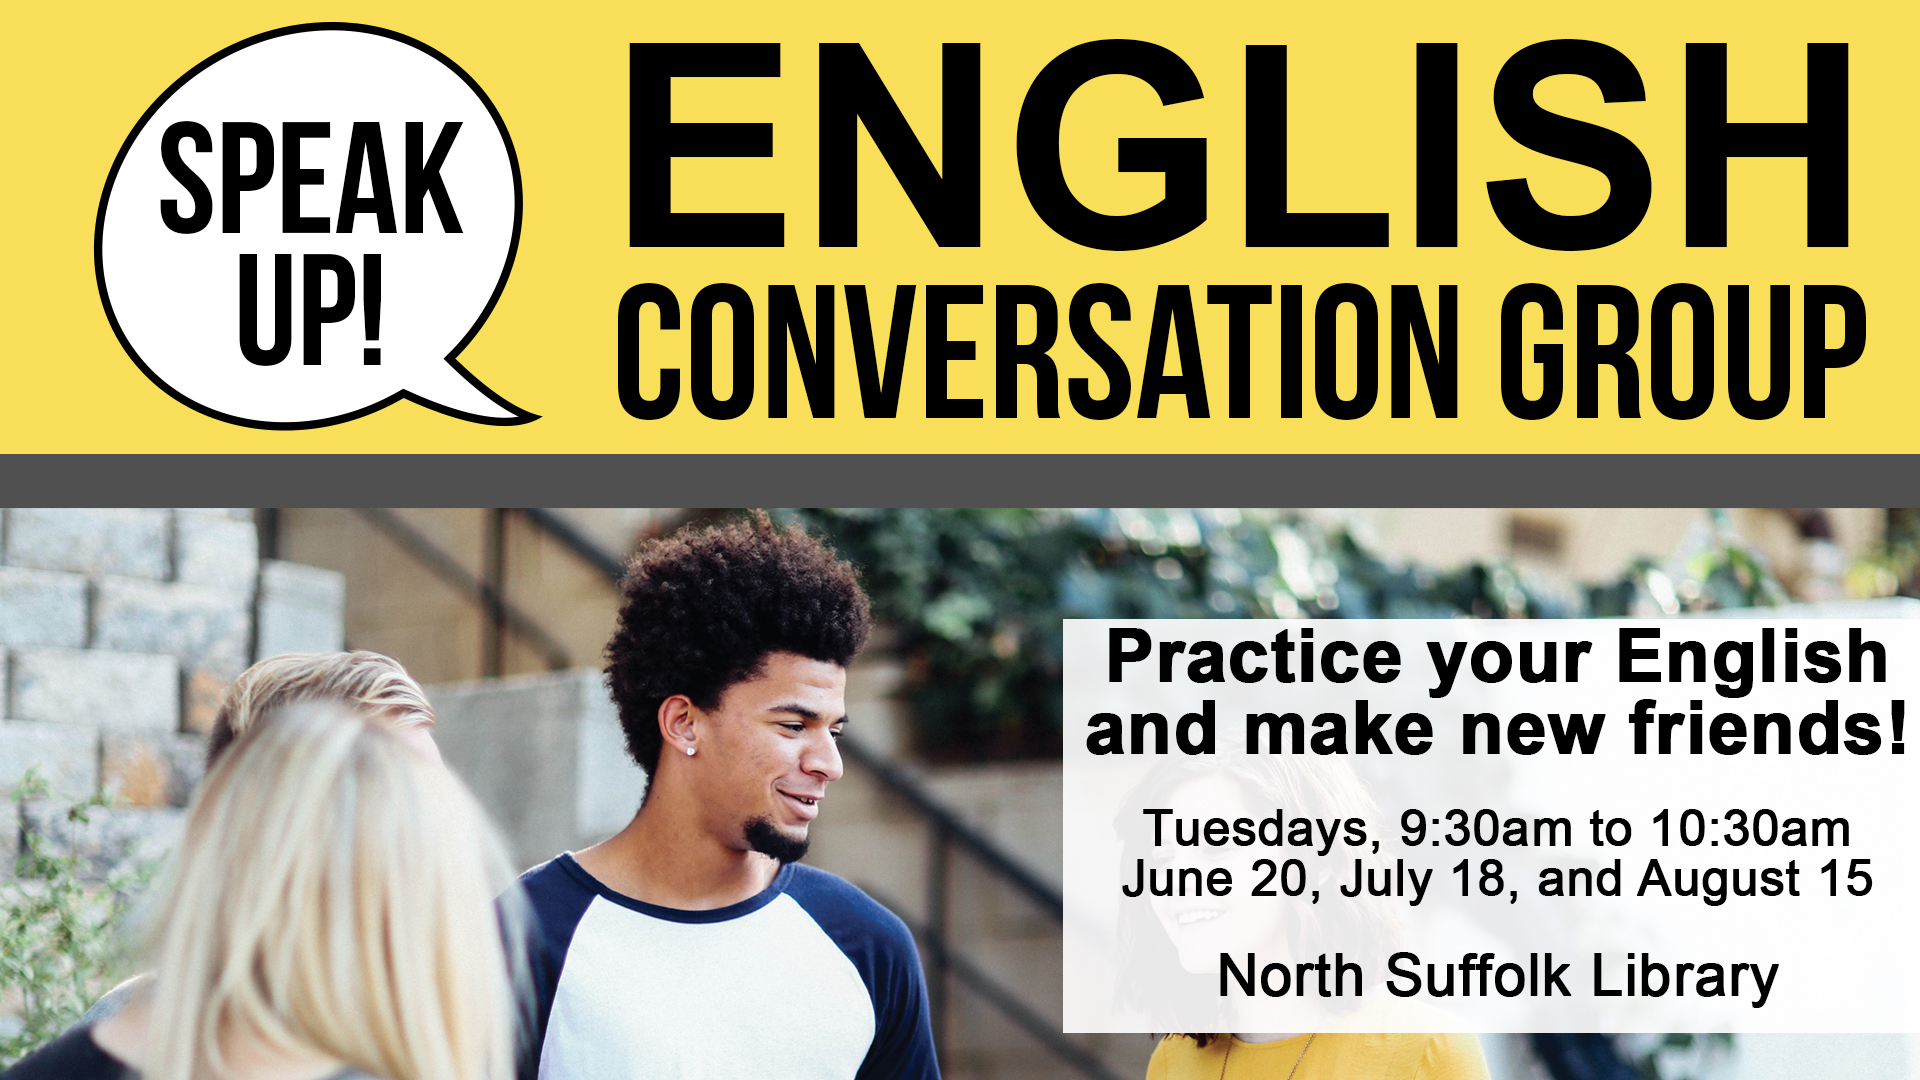 Speak Up! English Conversation Group